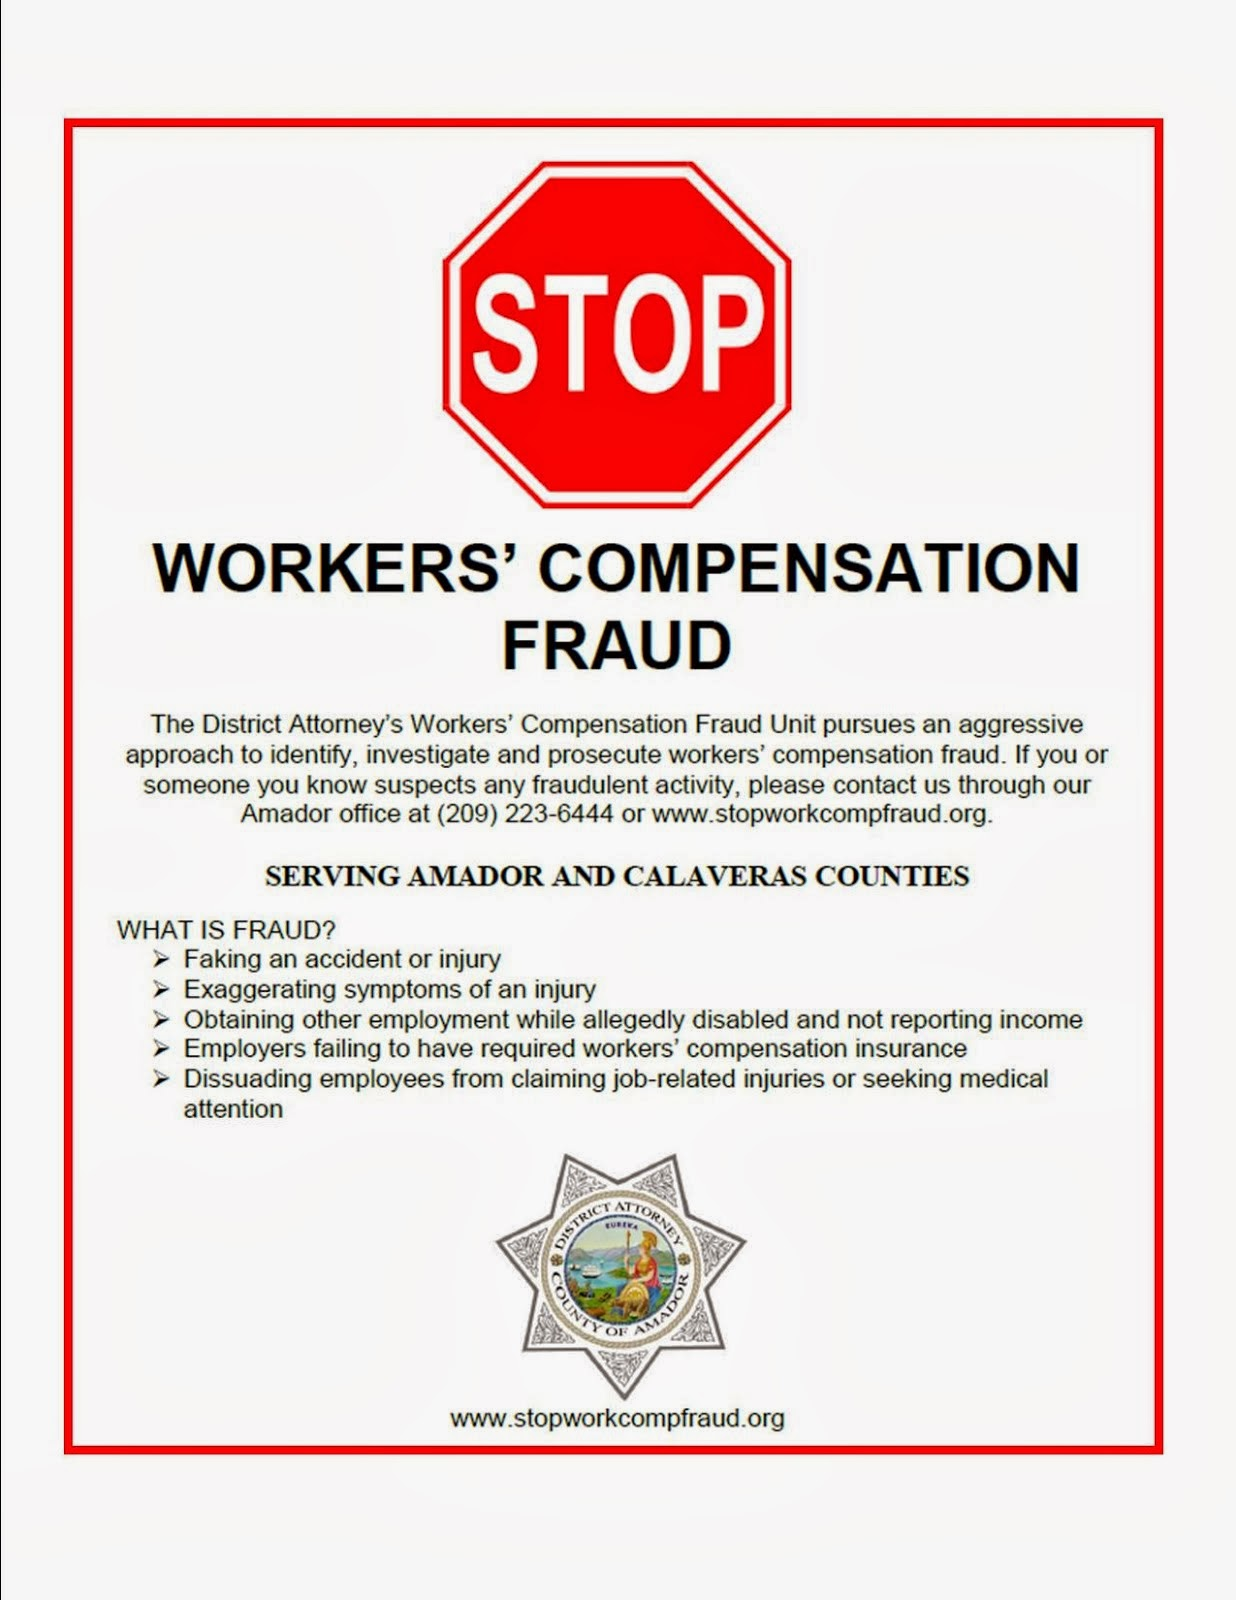 STOP Workers' Compensation Fraud